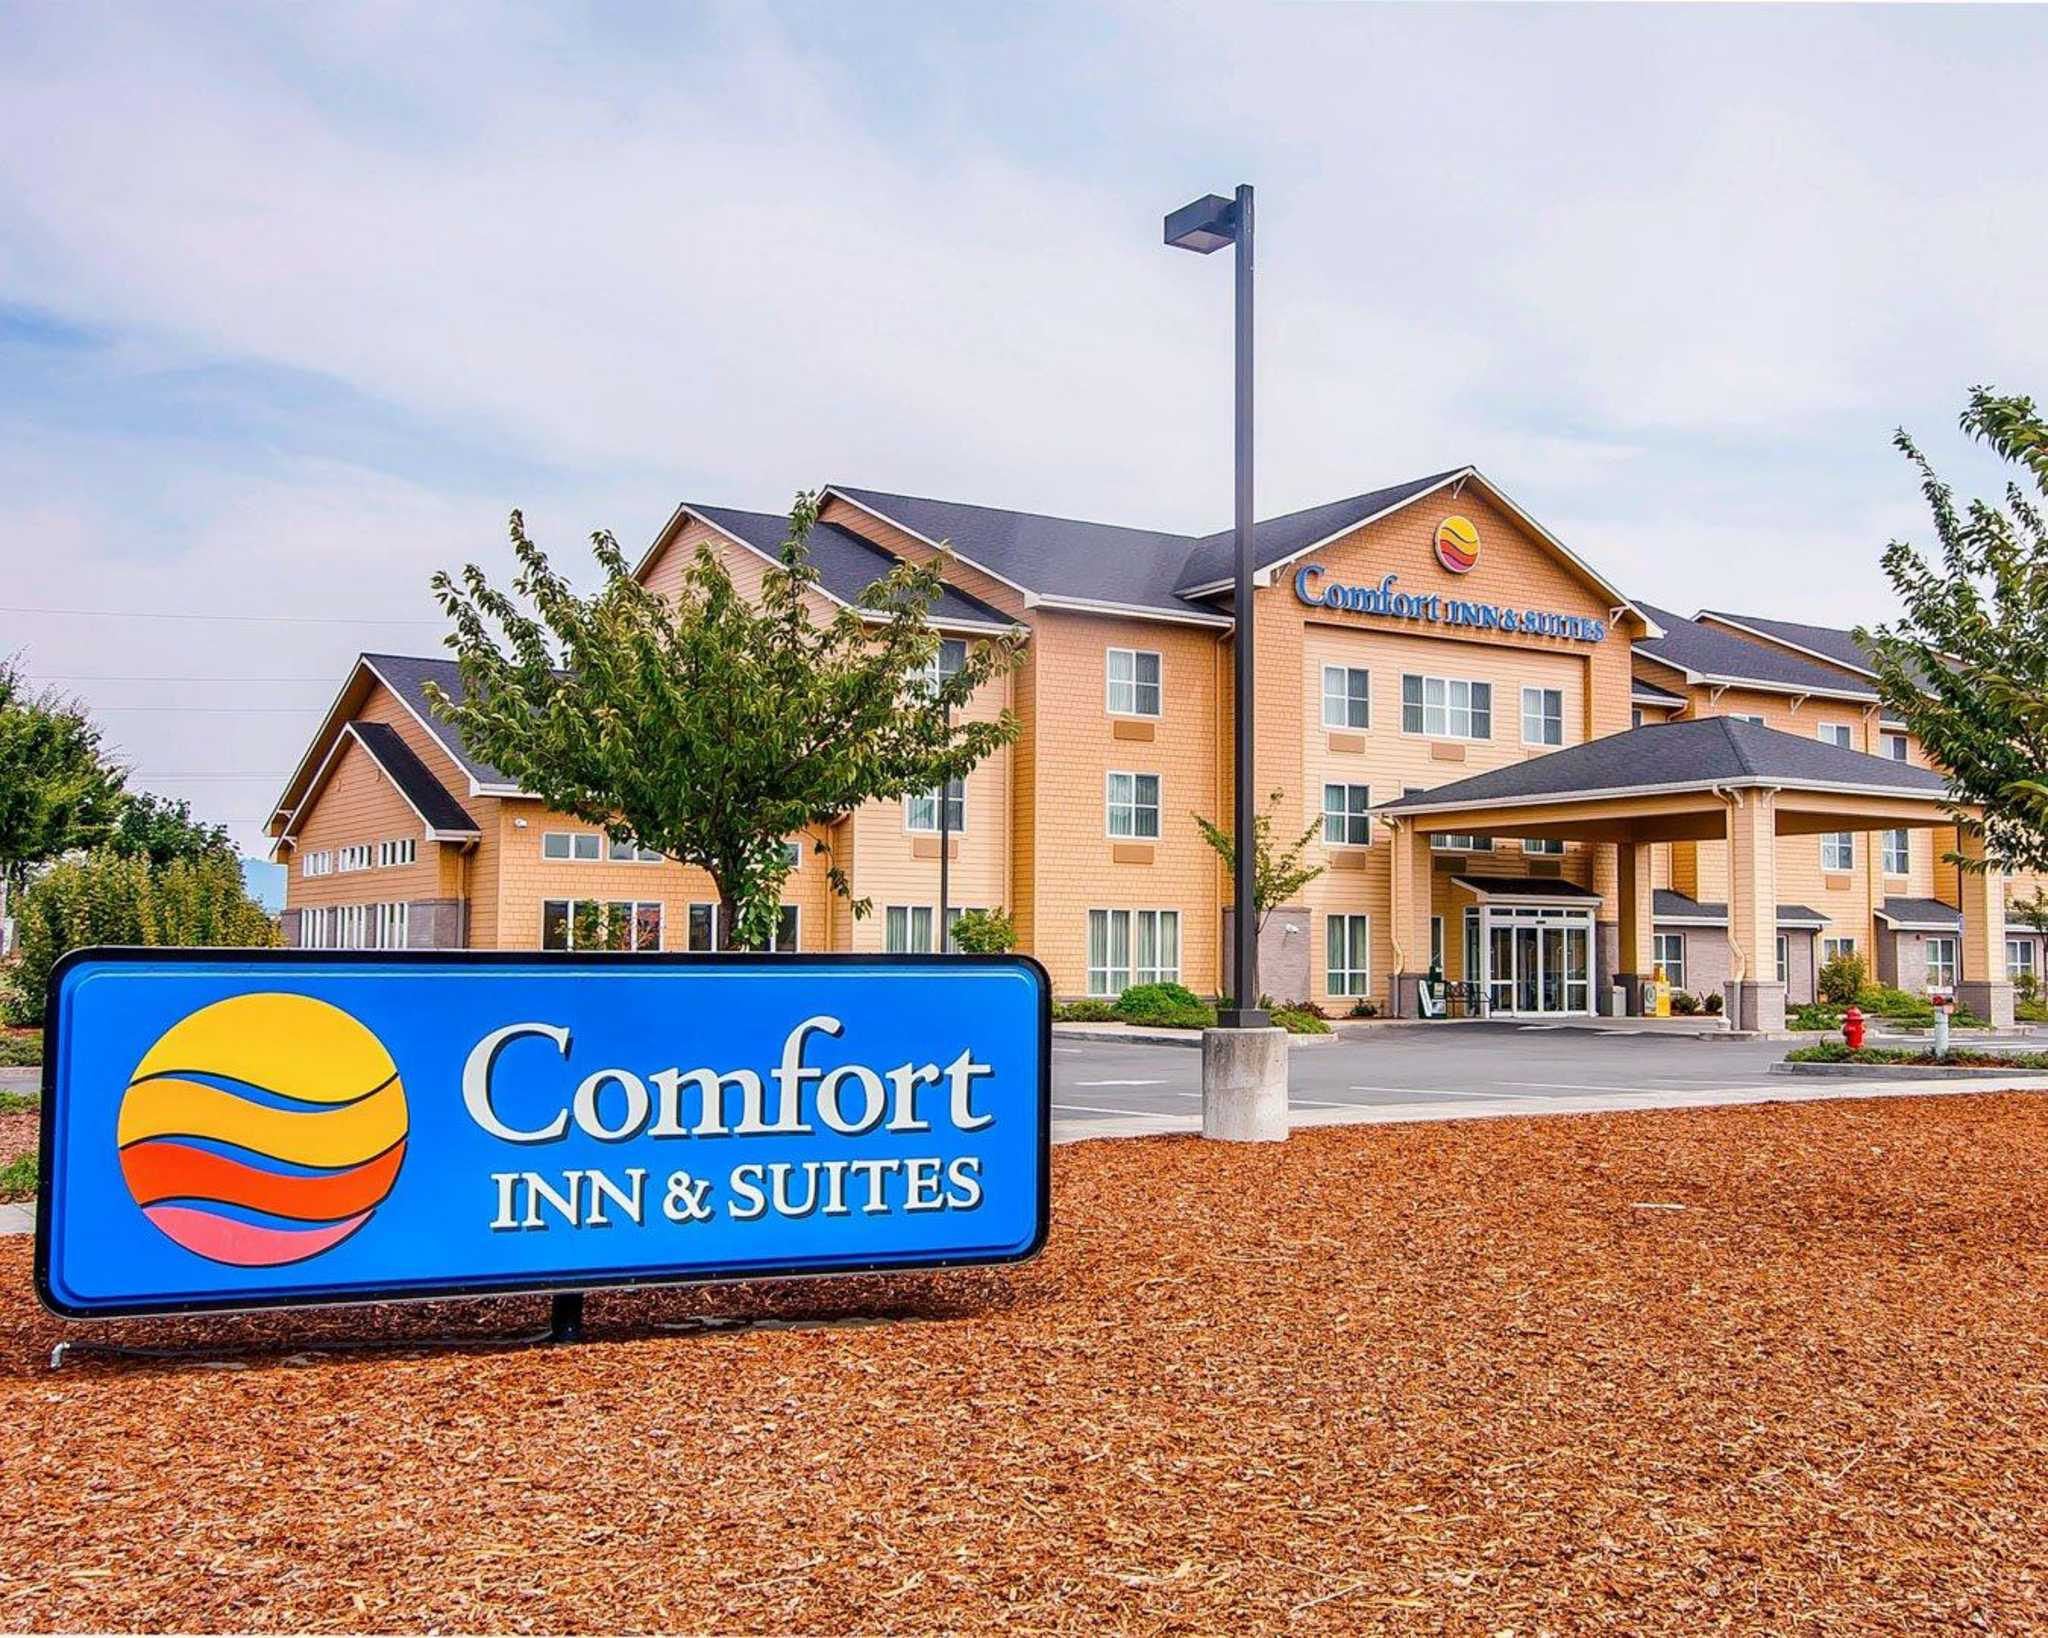 Comfort Inn Amp Suites Creswell Or Business Page